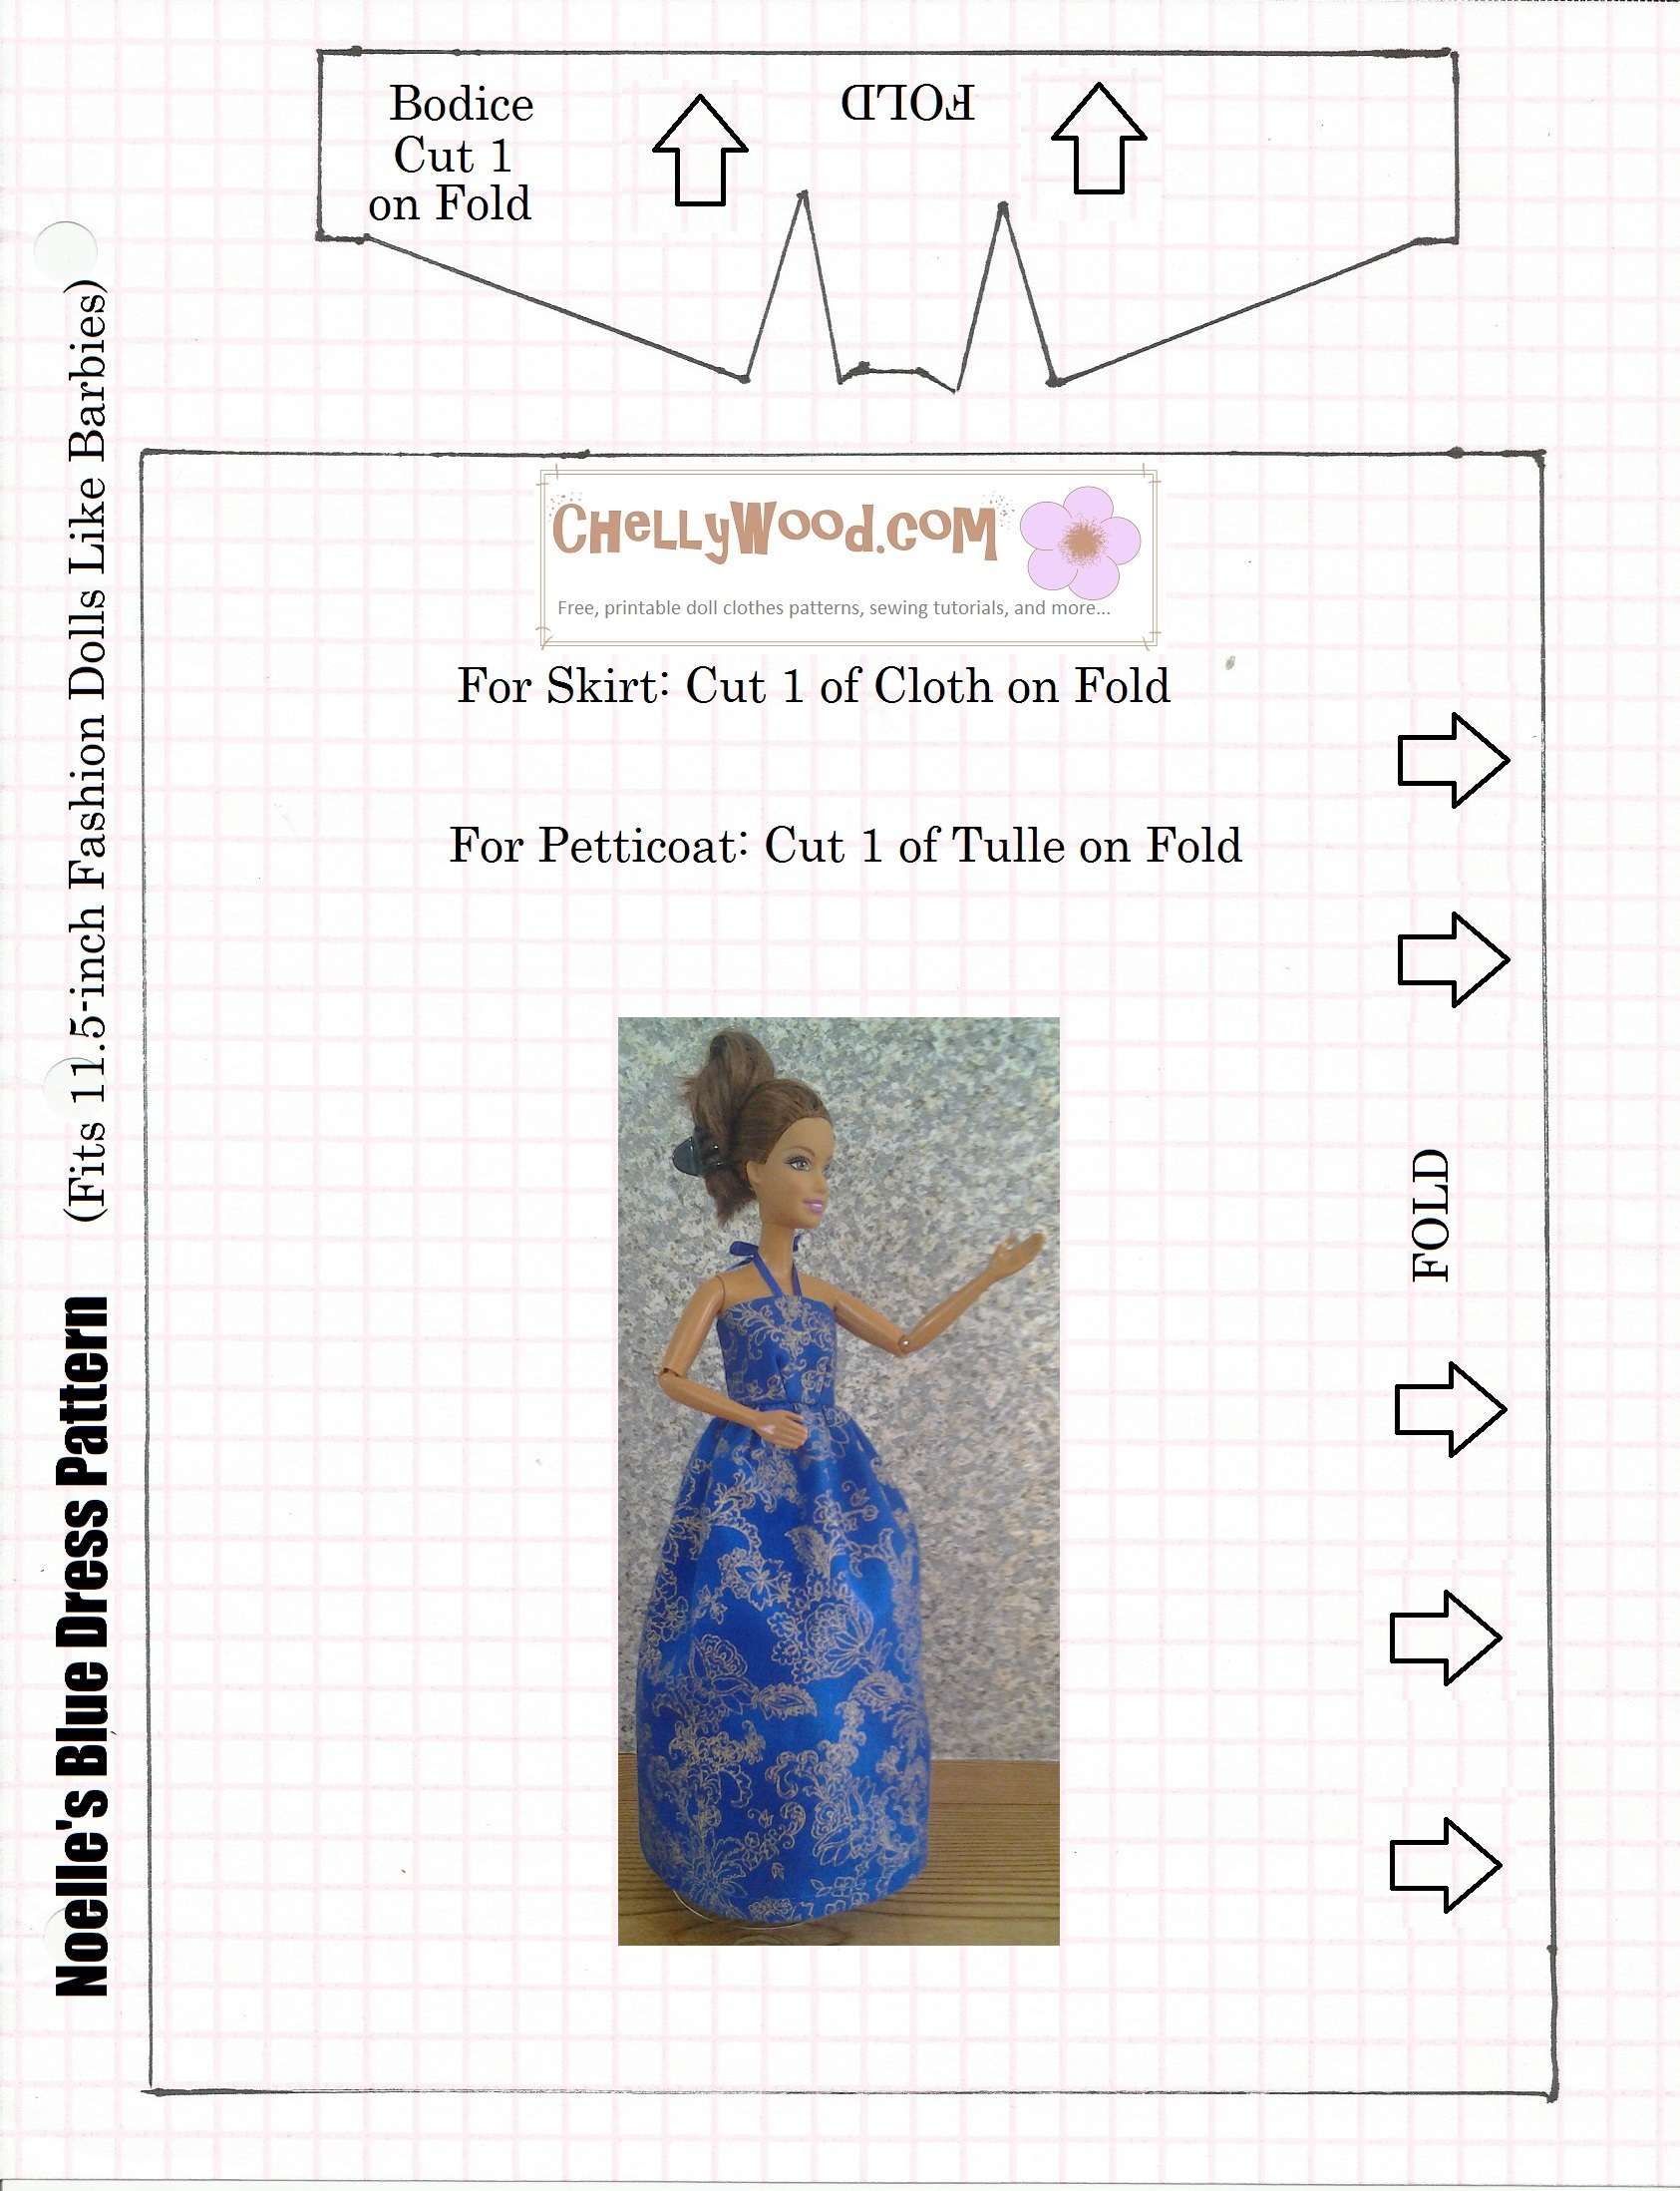 photo about Free Barbie Clothes Patterns Printable identify Barbie Apparel Layouts Absolutely free Doll Apparel Styles